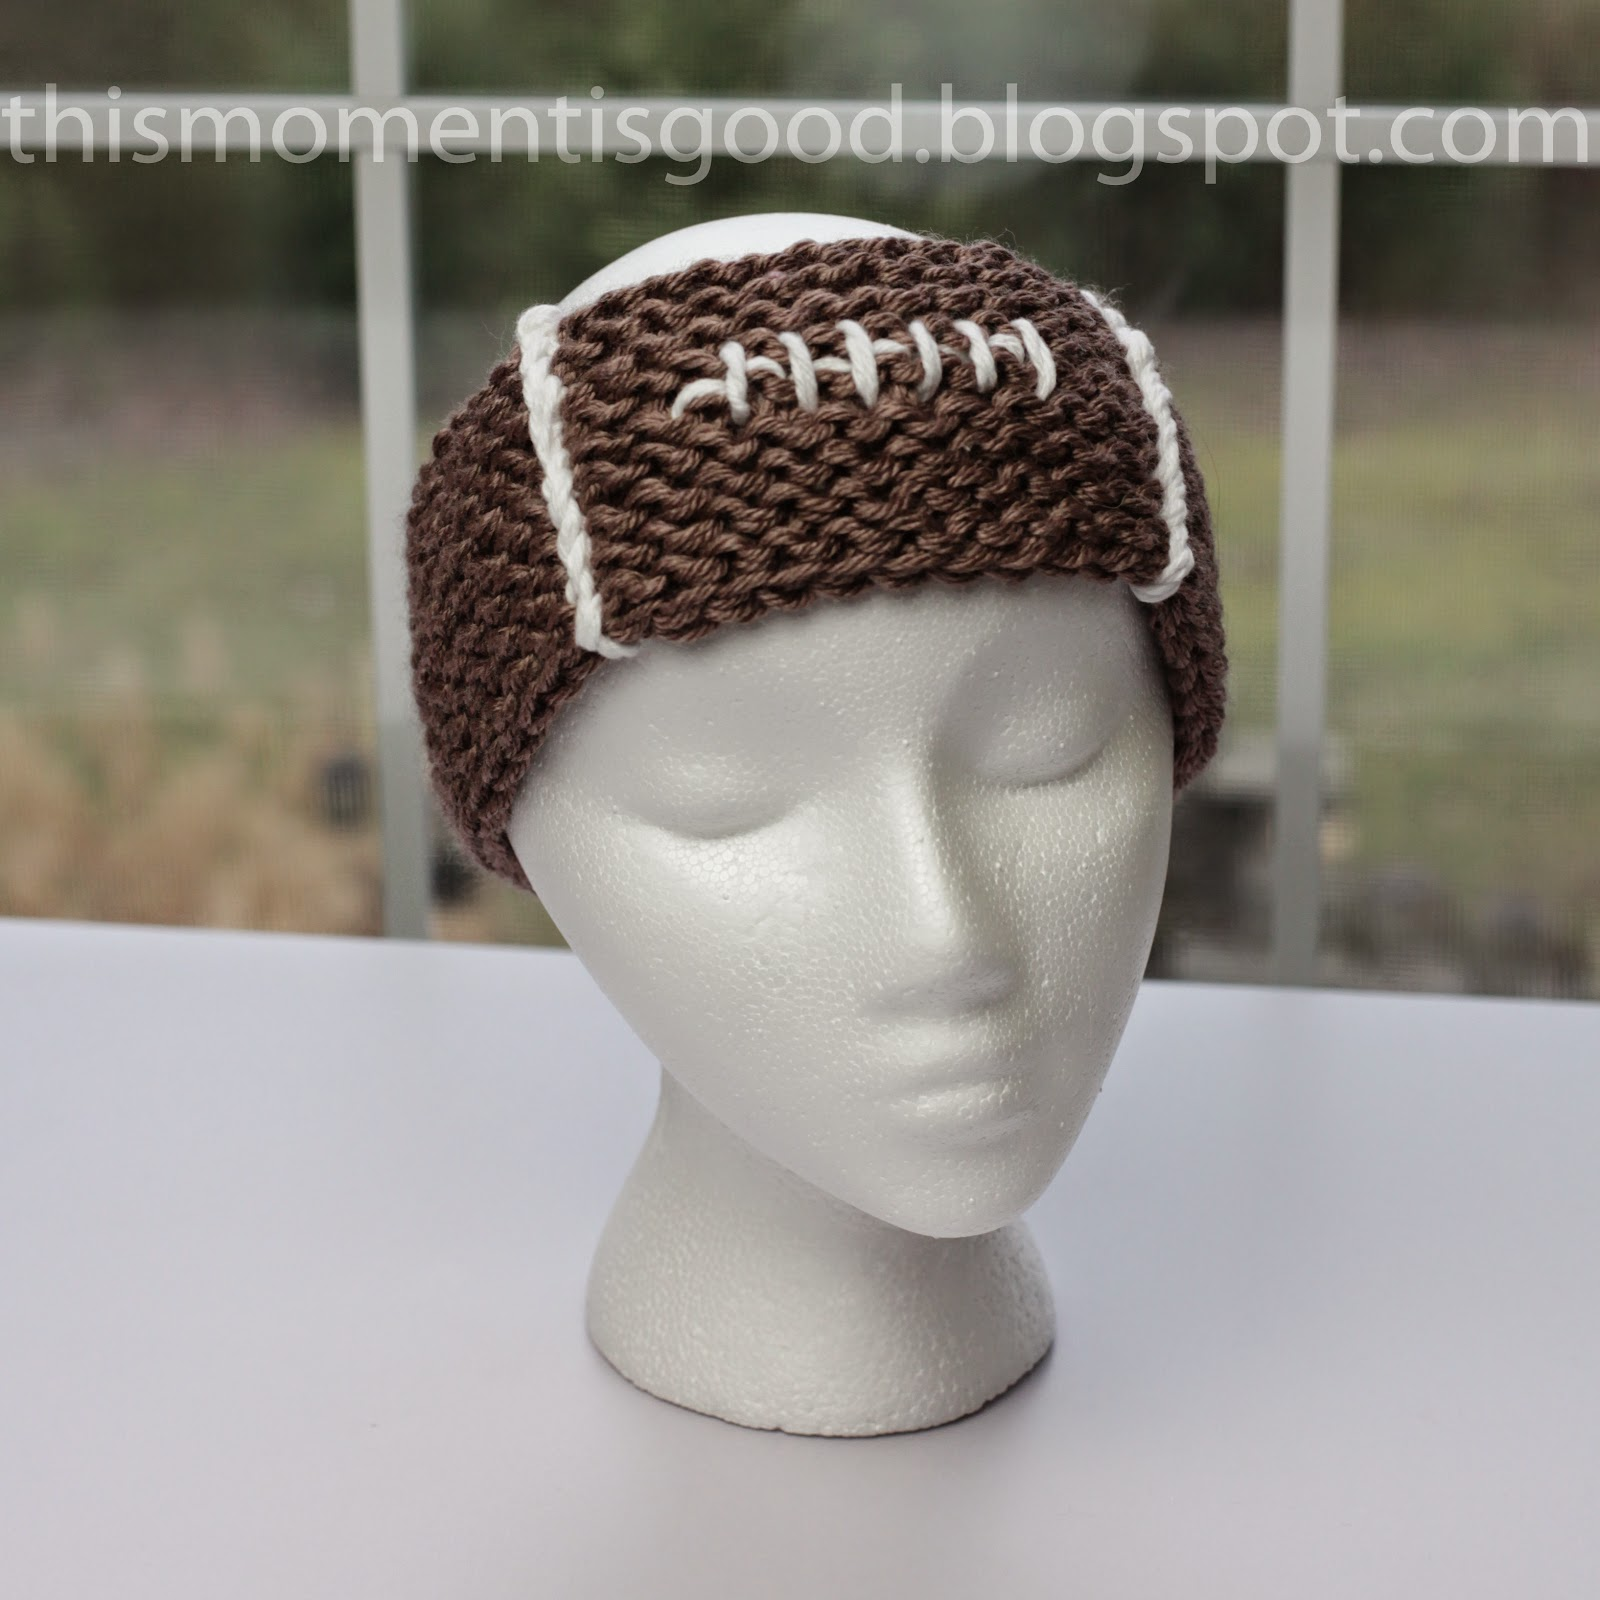 Loom Knitting Pattern Headband : Loom Knitting by This Moment is Good!: EASY LOOM KNIT FOOTBALL HEADBAND